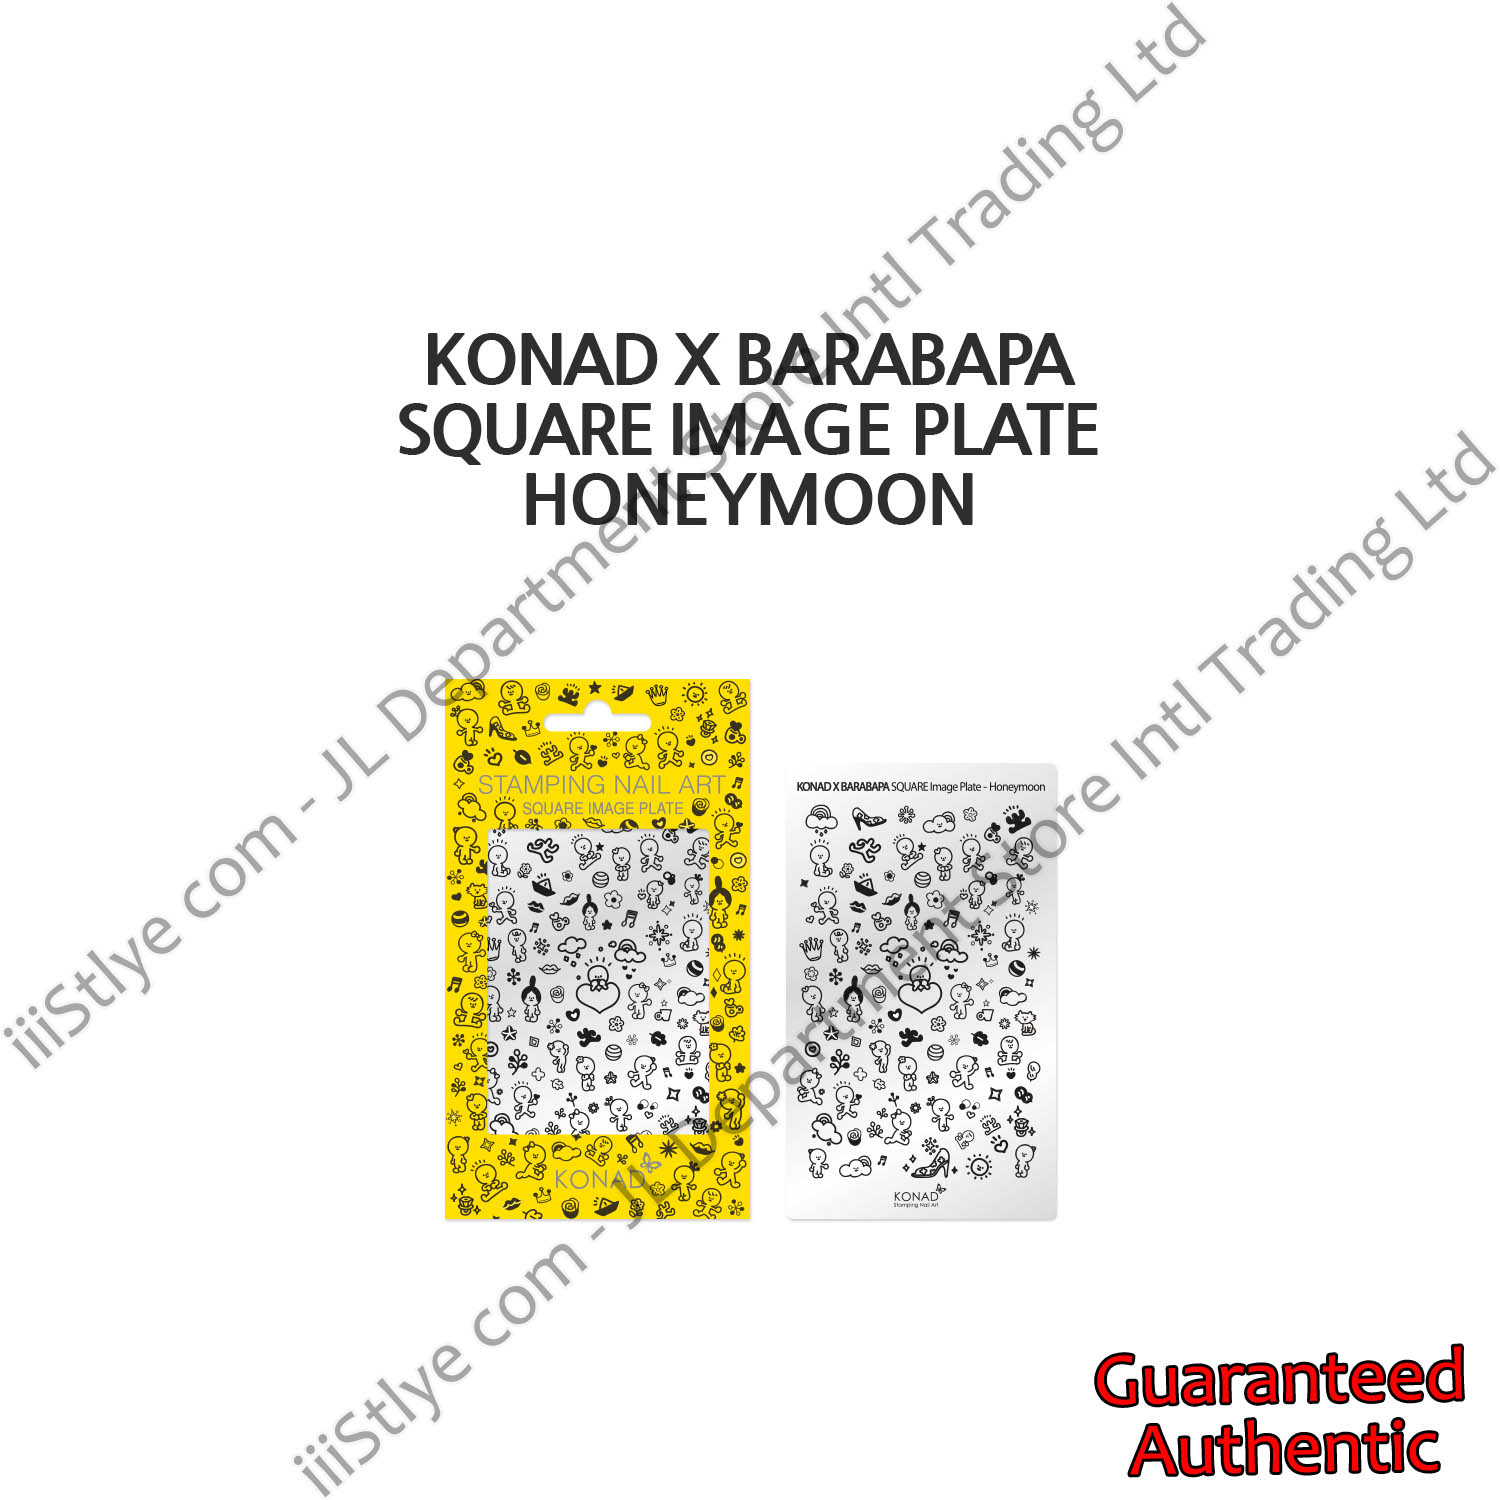 KonadXBarabapa square image plate Honeymoon